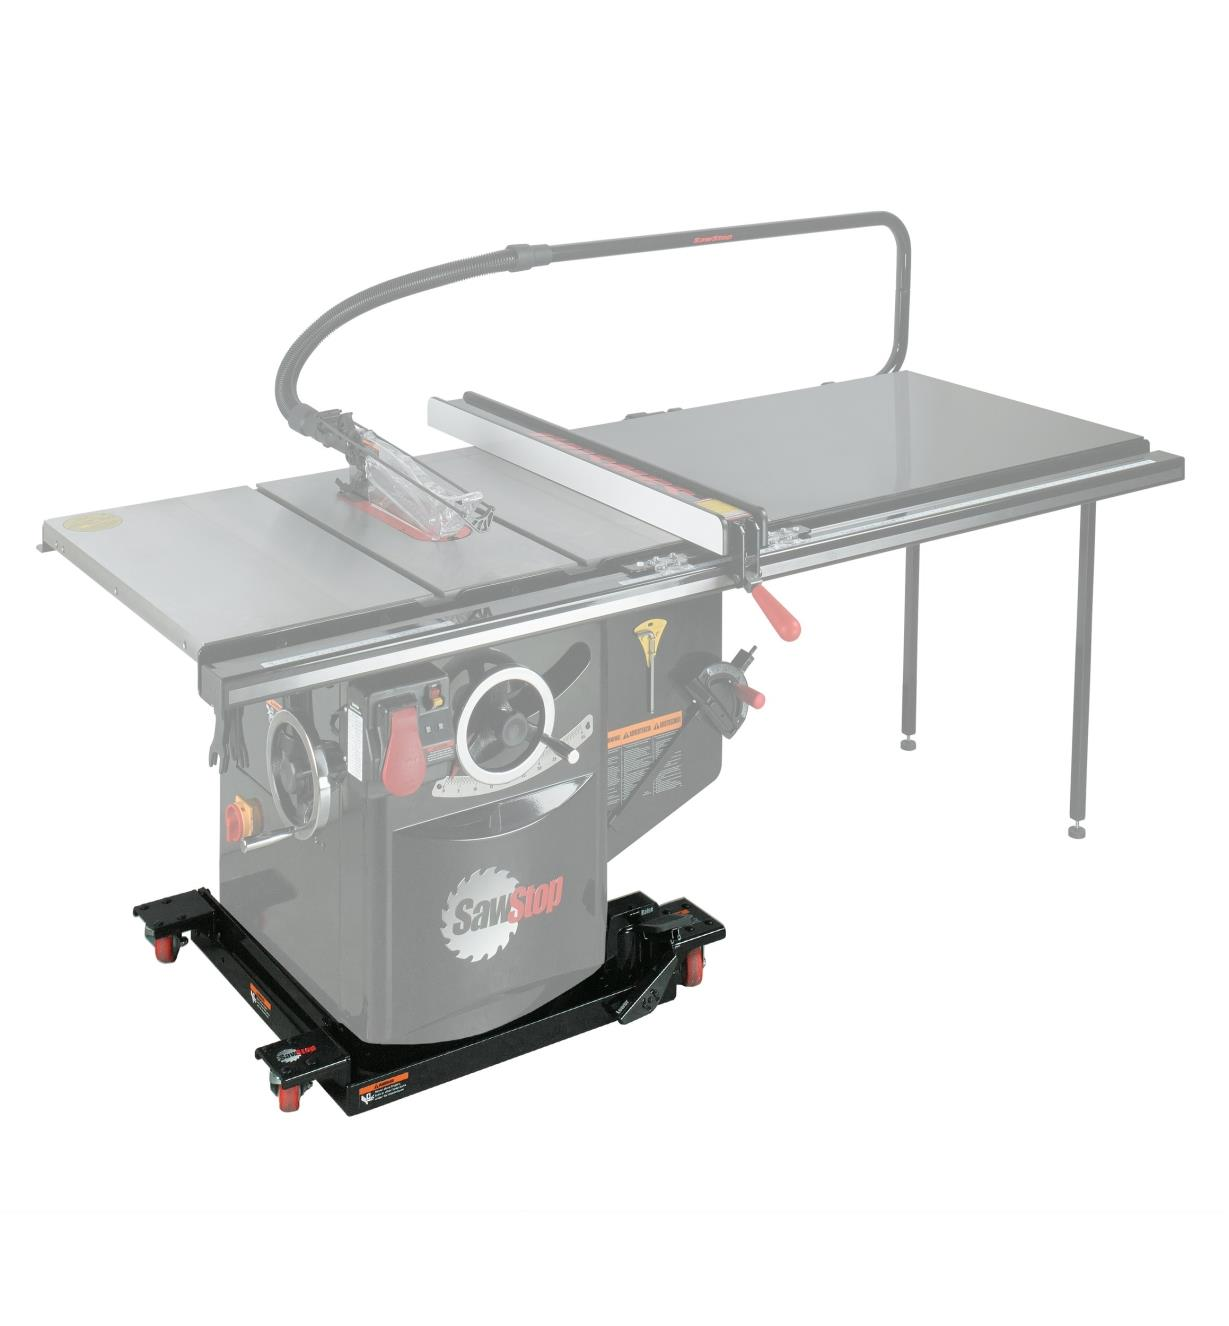 95T0410 - Industrial Saw Mobile Base